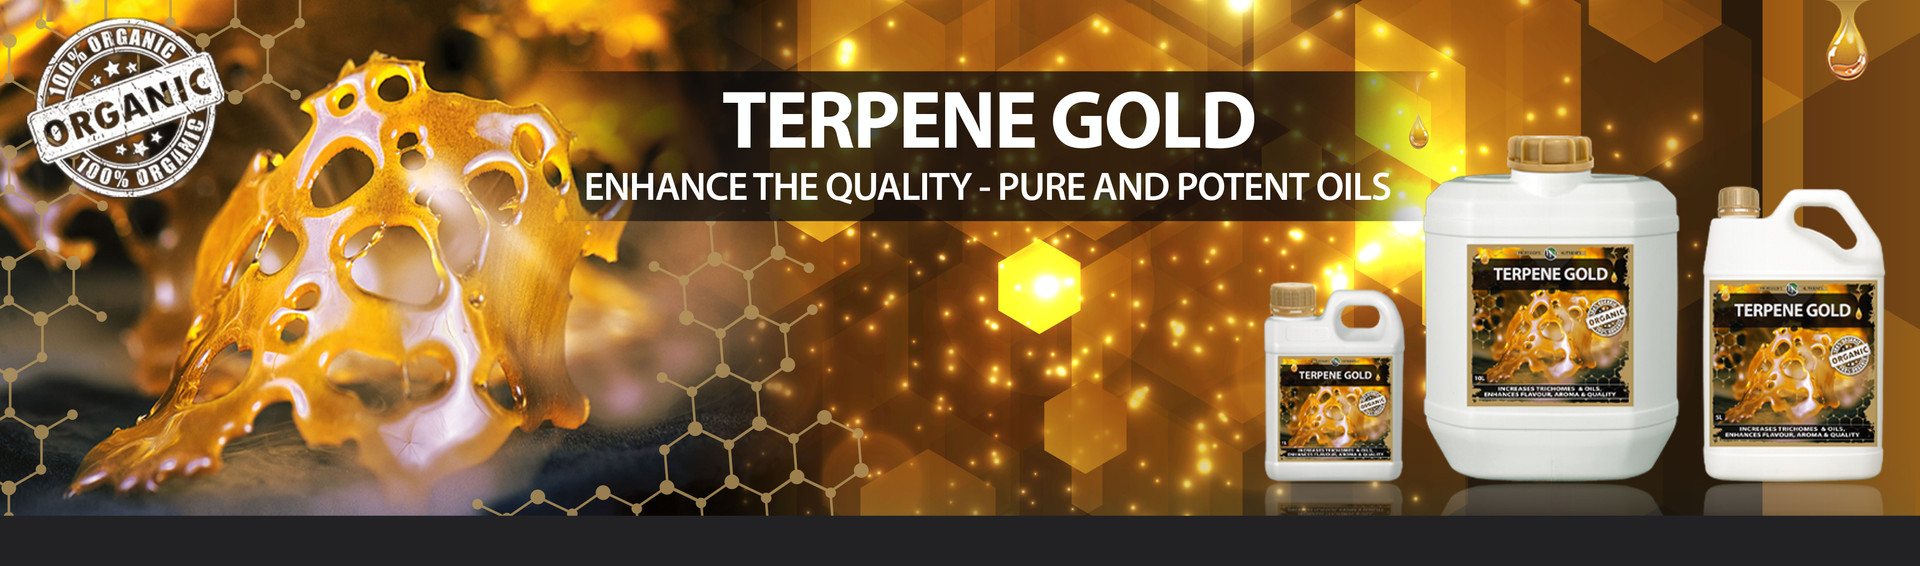 Terpene Gold Professors Nutrients